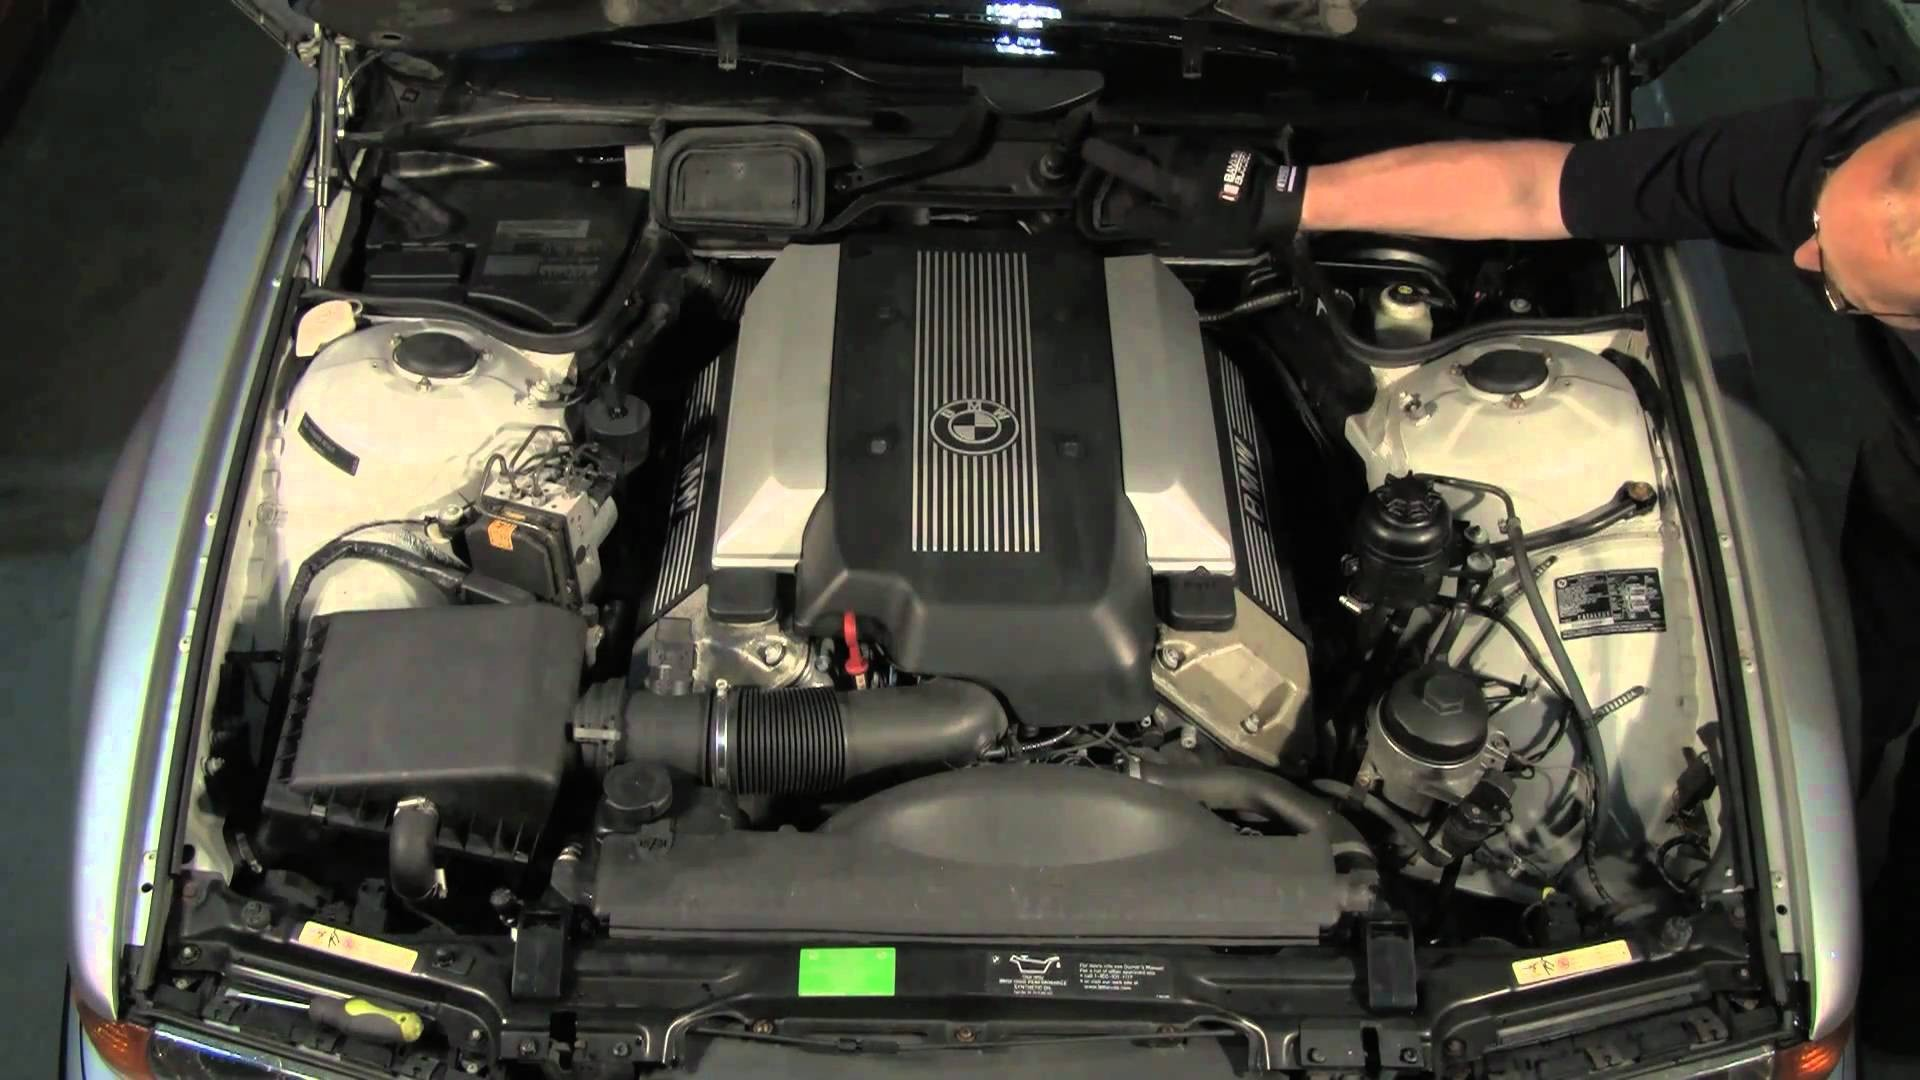 Bmw Engine Diagram E46 20fresh Bmw Engine Diagram Of Bmw Engine Diagram E46